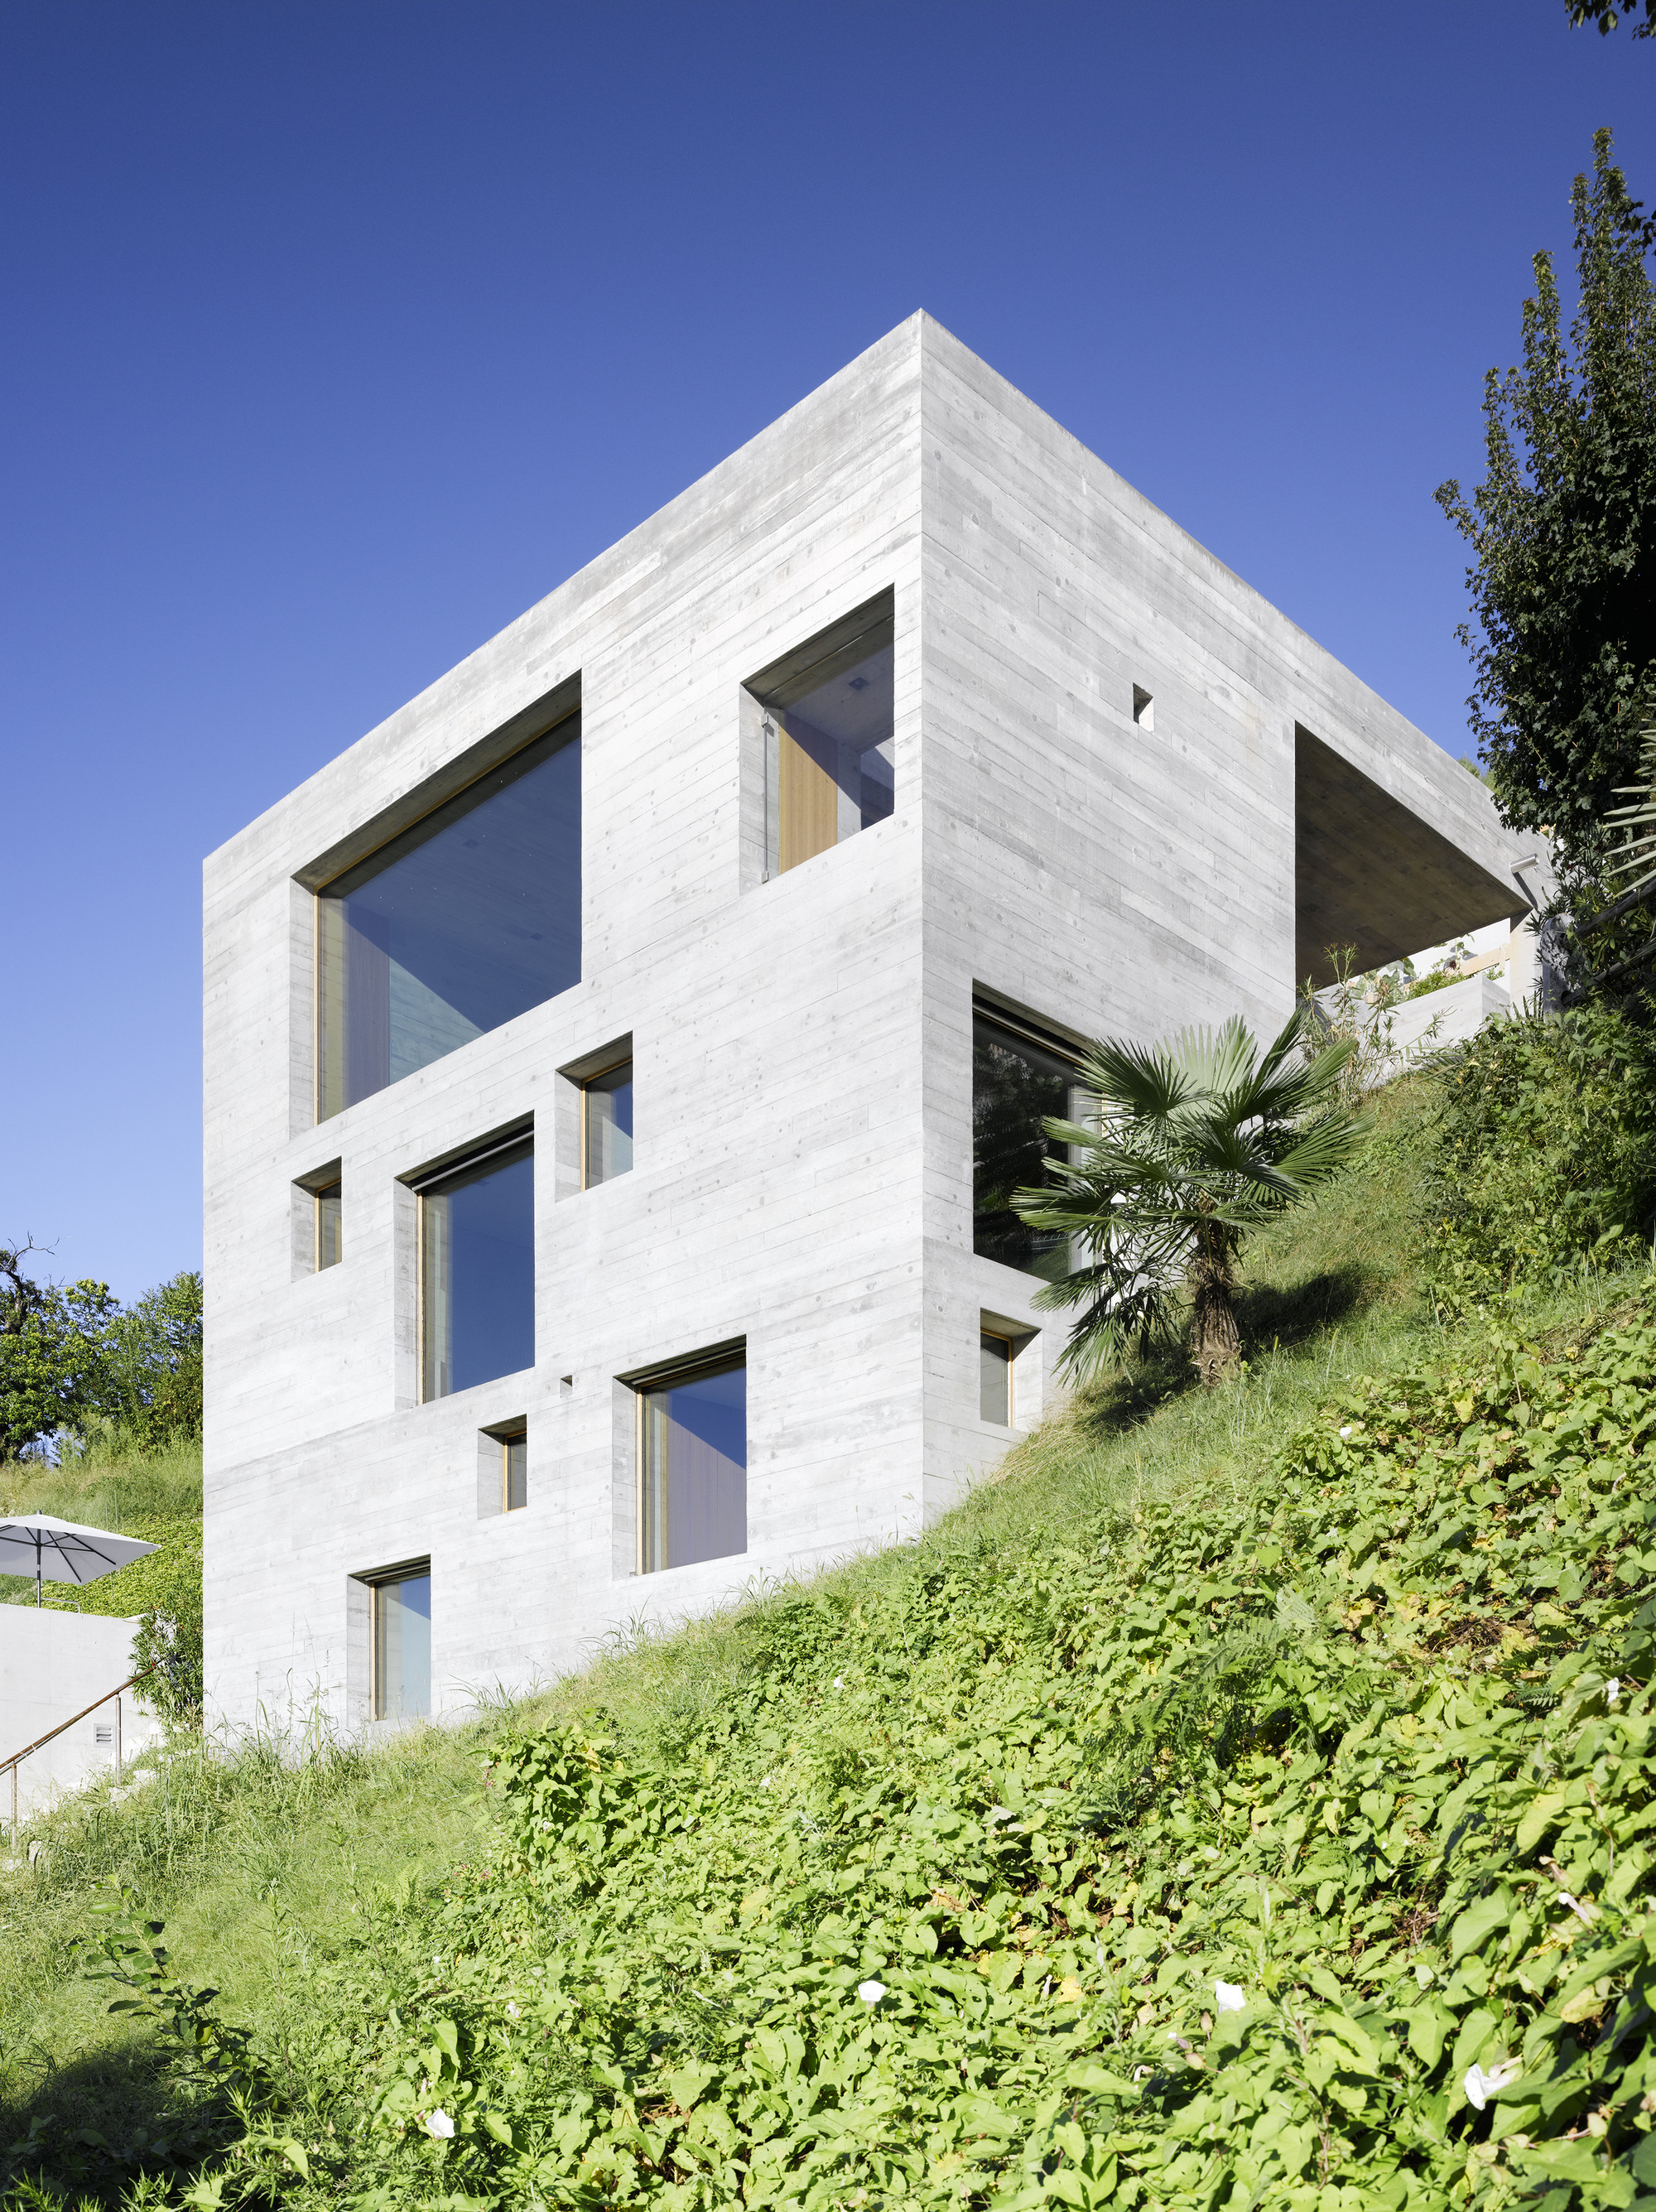 gallery of new concrete house wespi de meuron 1